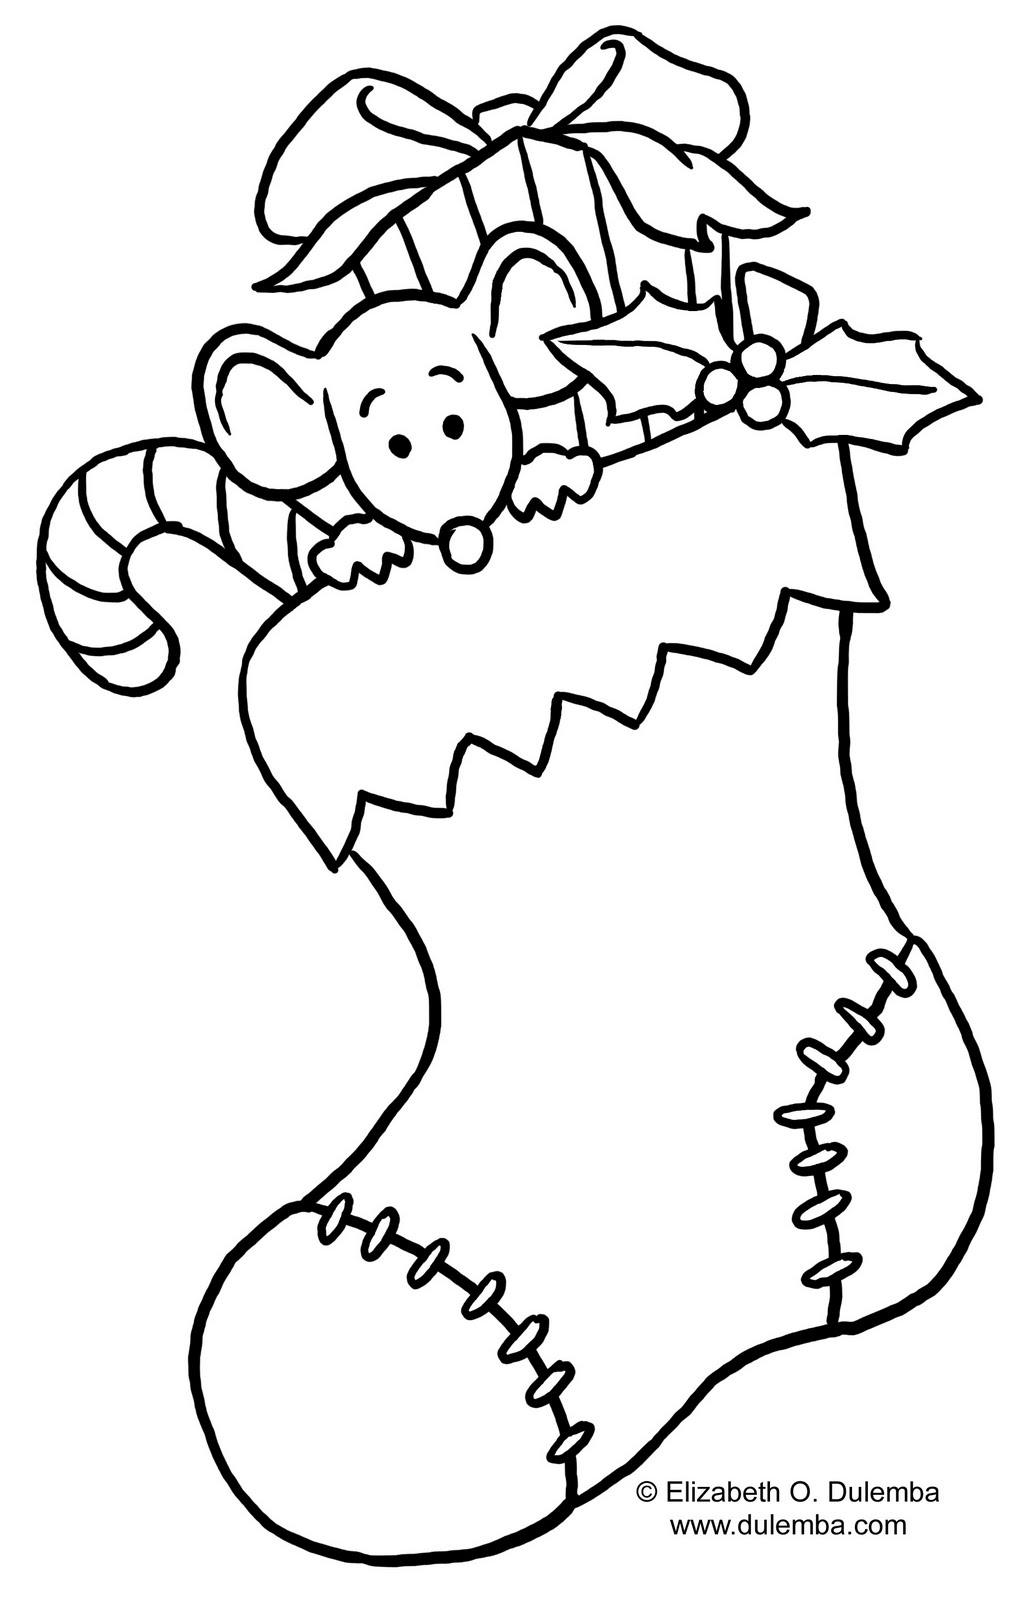 coloring christmas printables christmas tree coloring pages for childrens printable for free printables coloring christmas